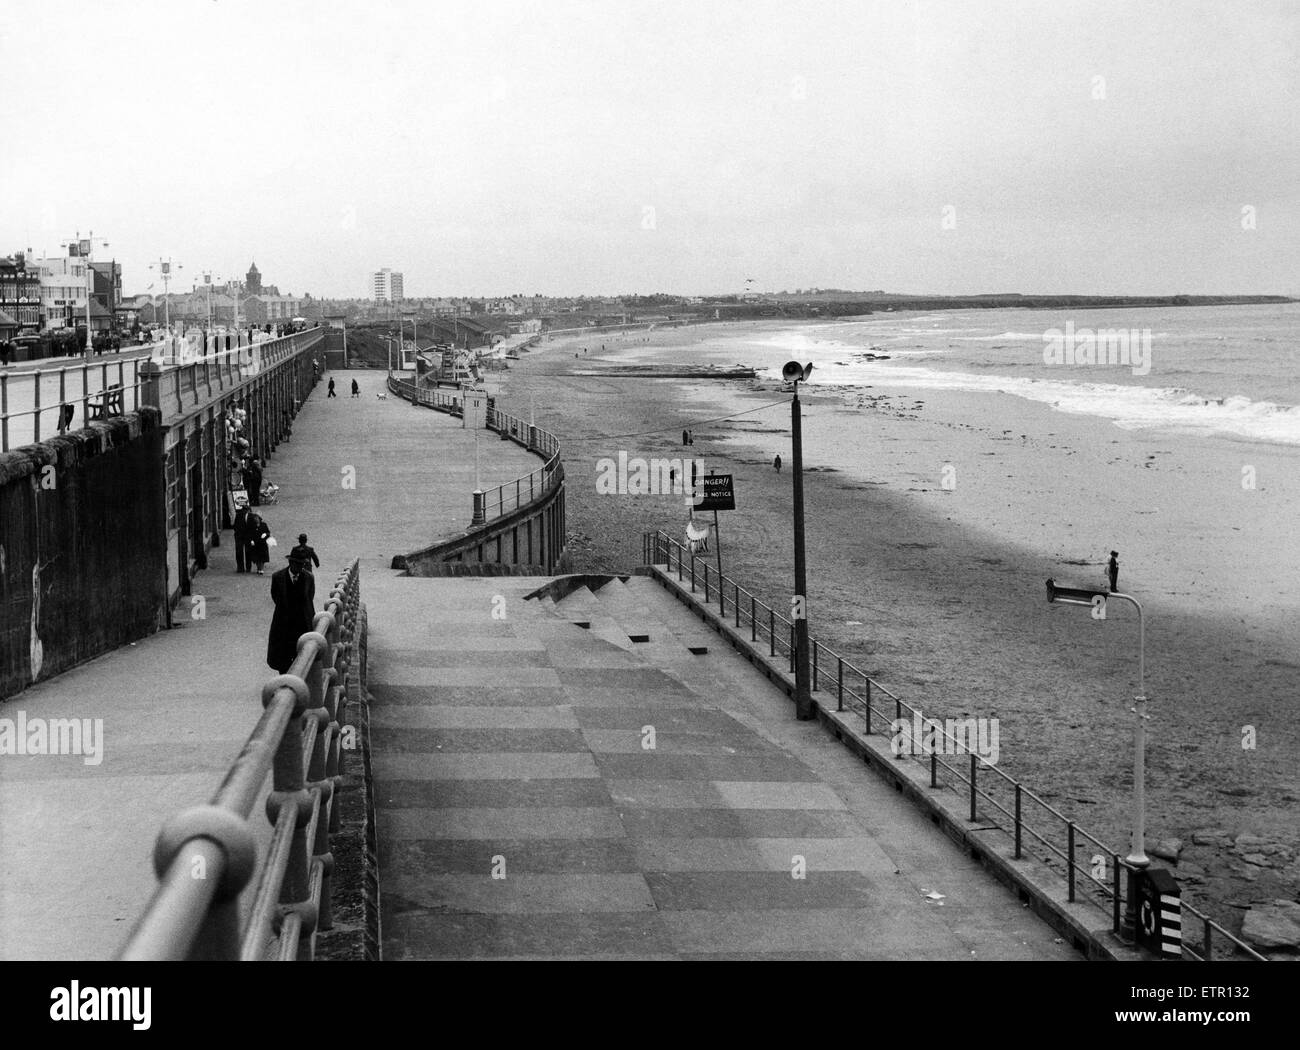 Whitley Bay promenade, Tyne and Wear. 20th July 1961. - Stock Image